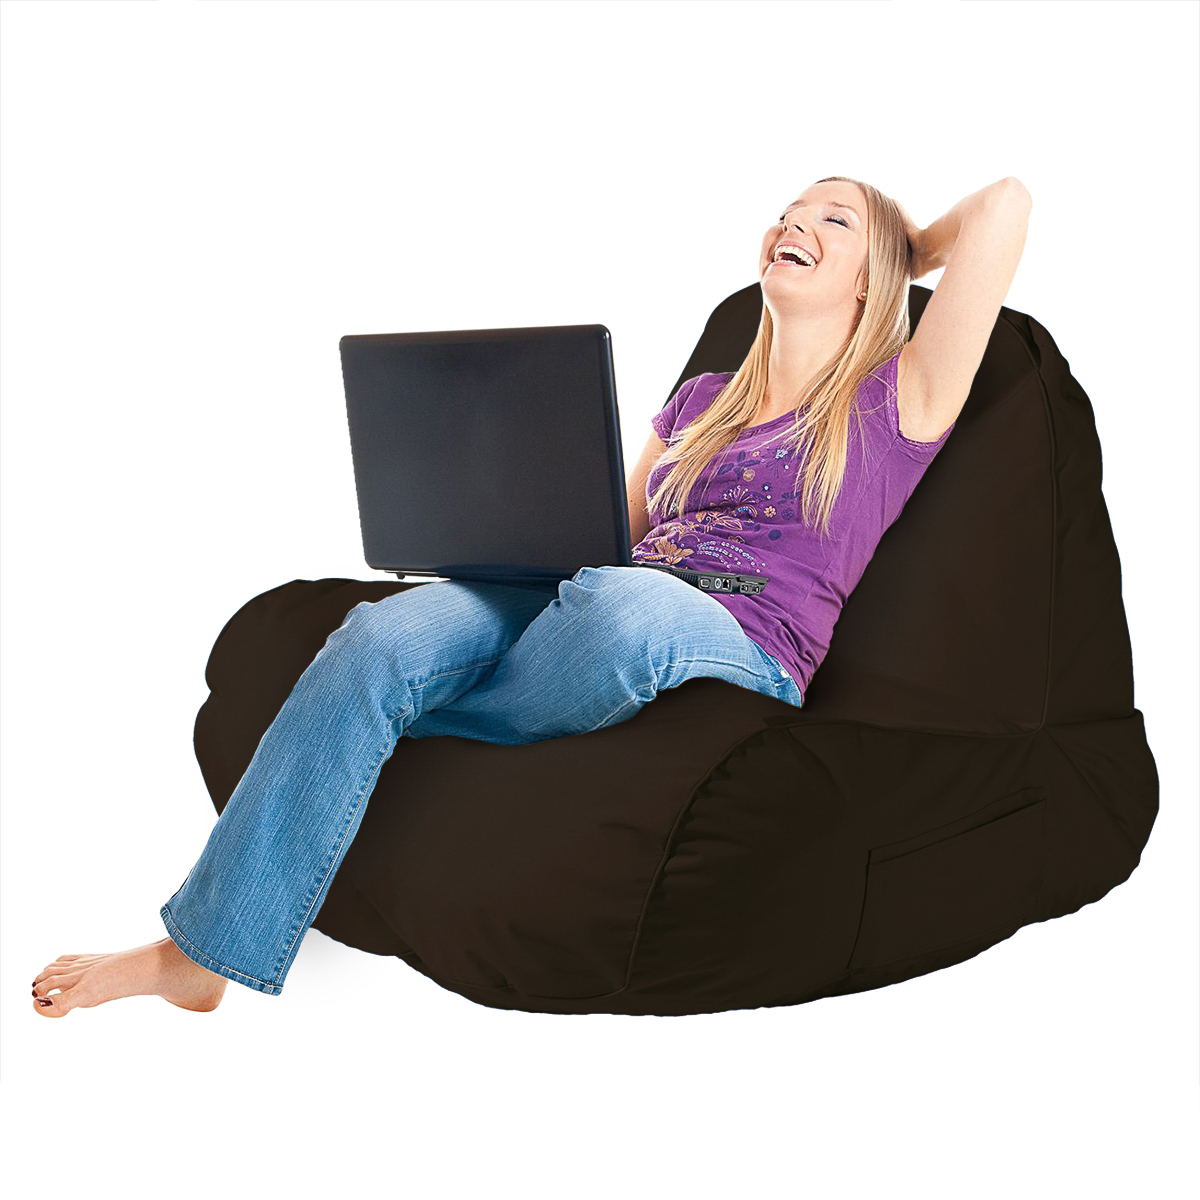 Comfiest Chair Original Comfy Chair Indoor Outdoor Beanbag Dorm Lounger